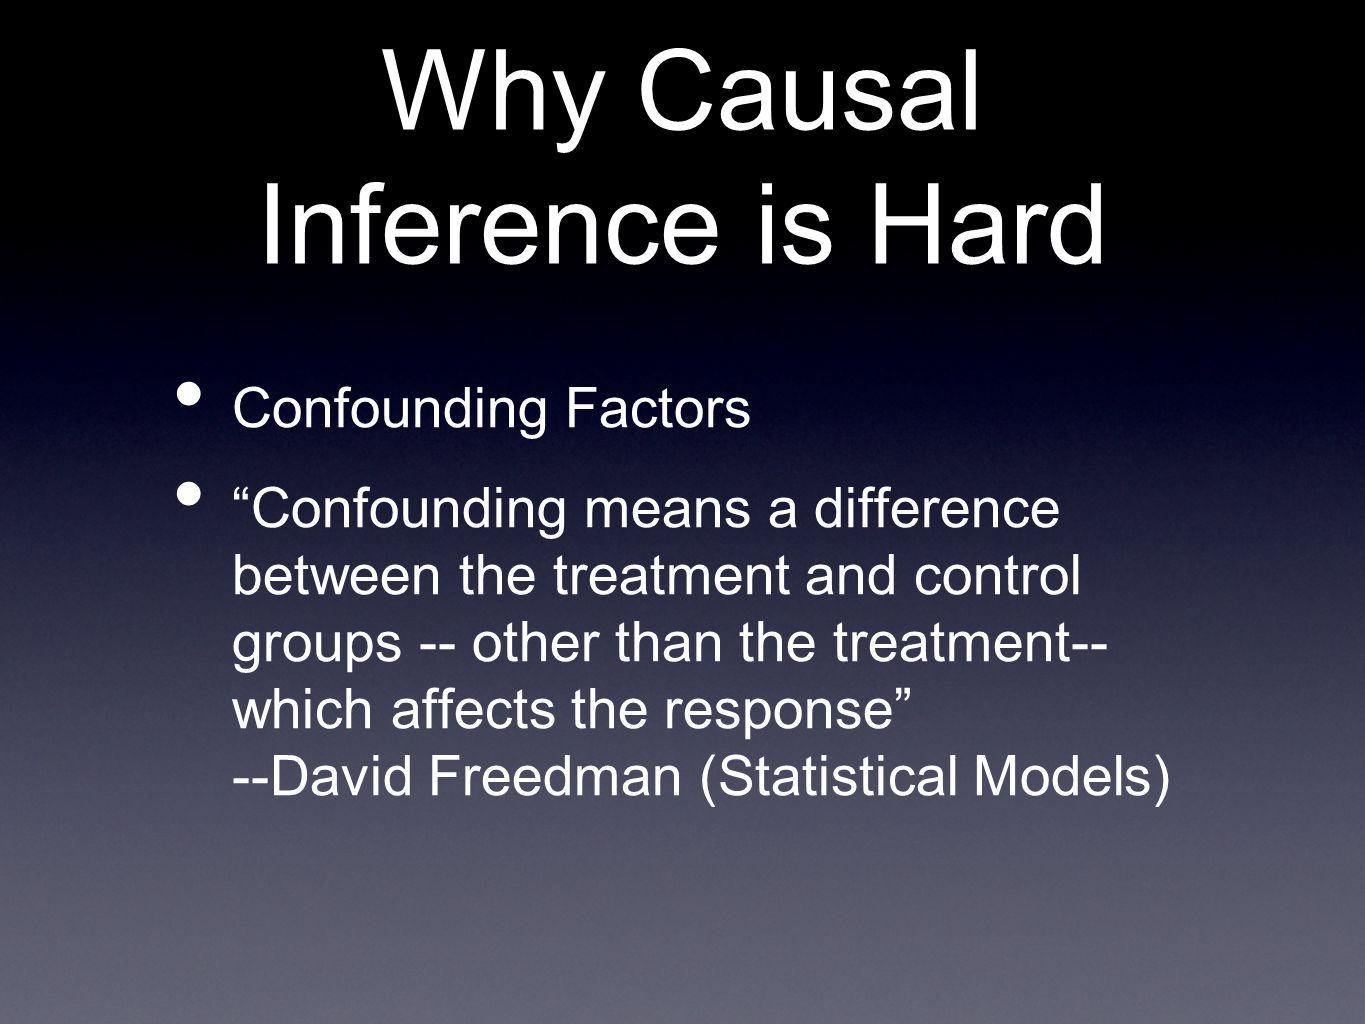 Why Causal Inference is Hard Confounding Factors Confounding means a difference between the treatment and control groups -- other than the treatment-- which affects the response --David Freedman (Statistical Models)